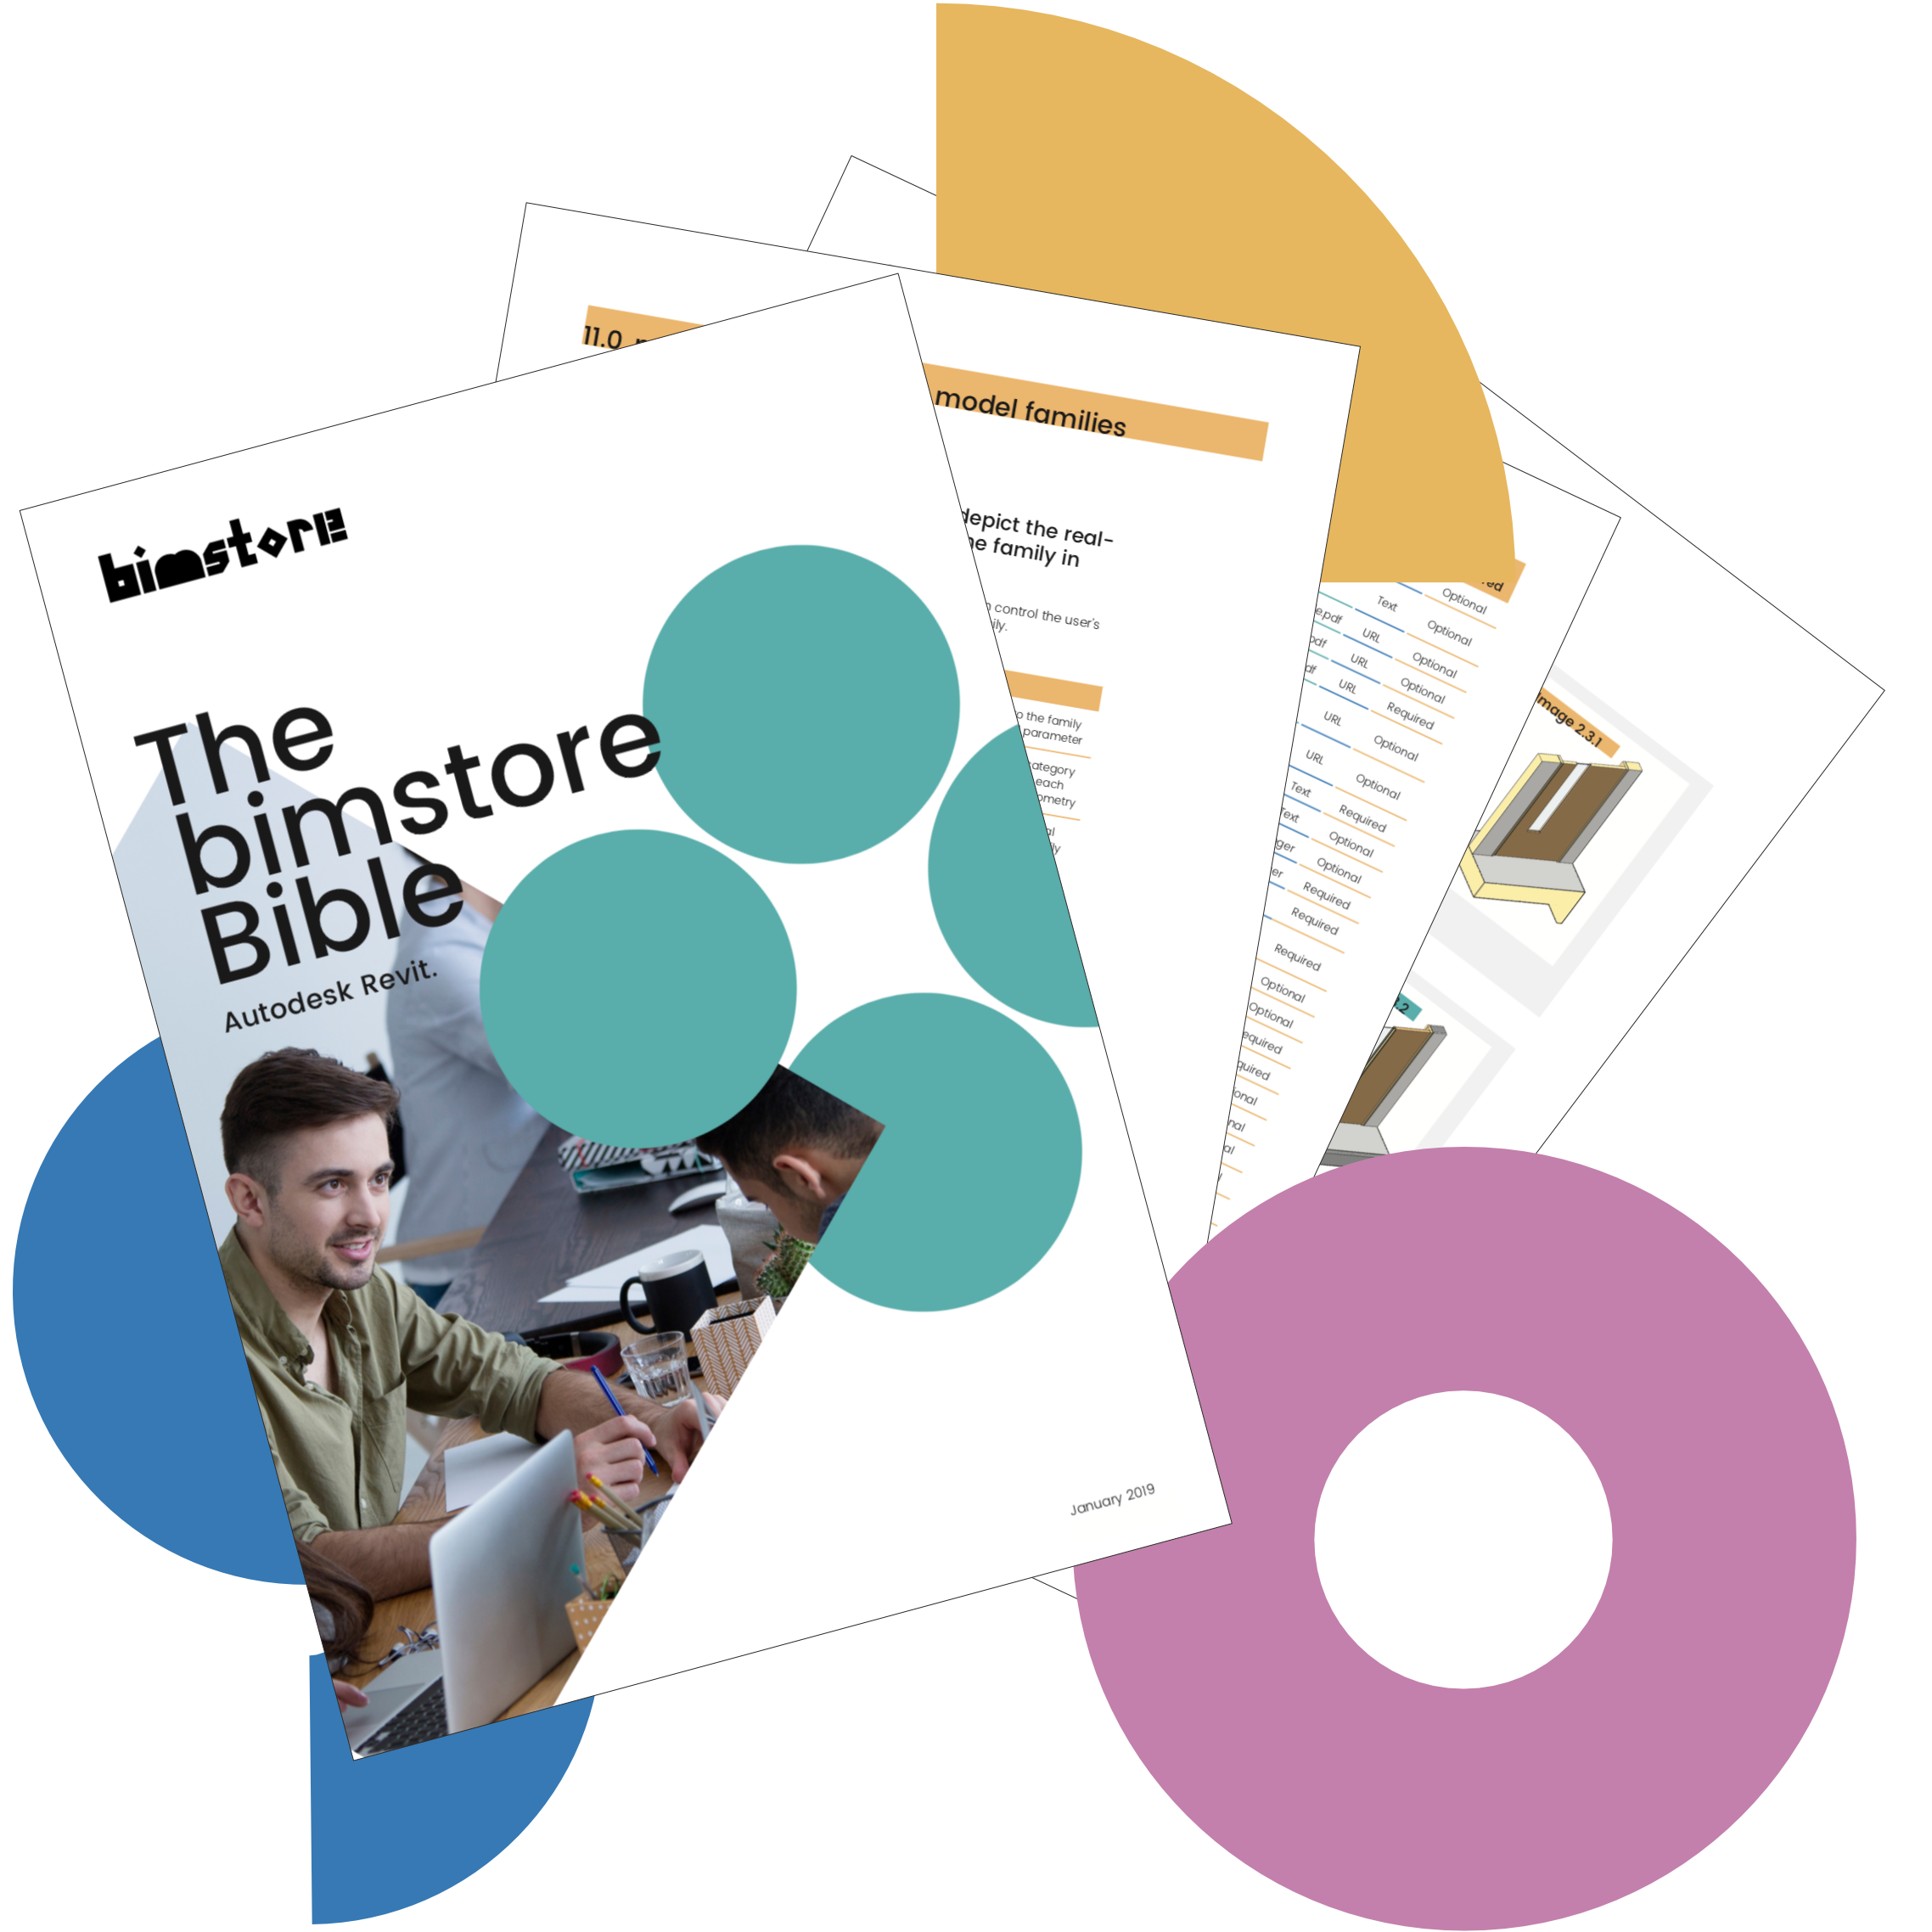 bimstore bible